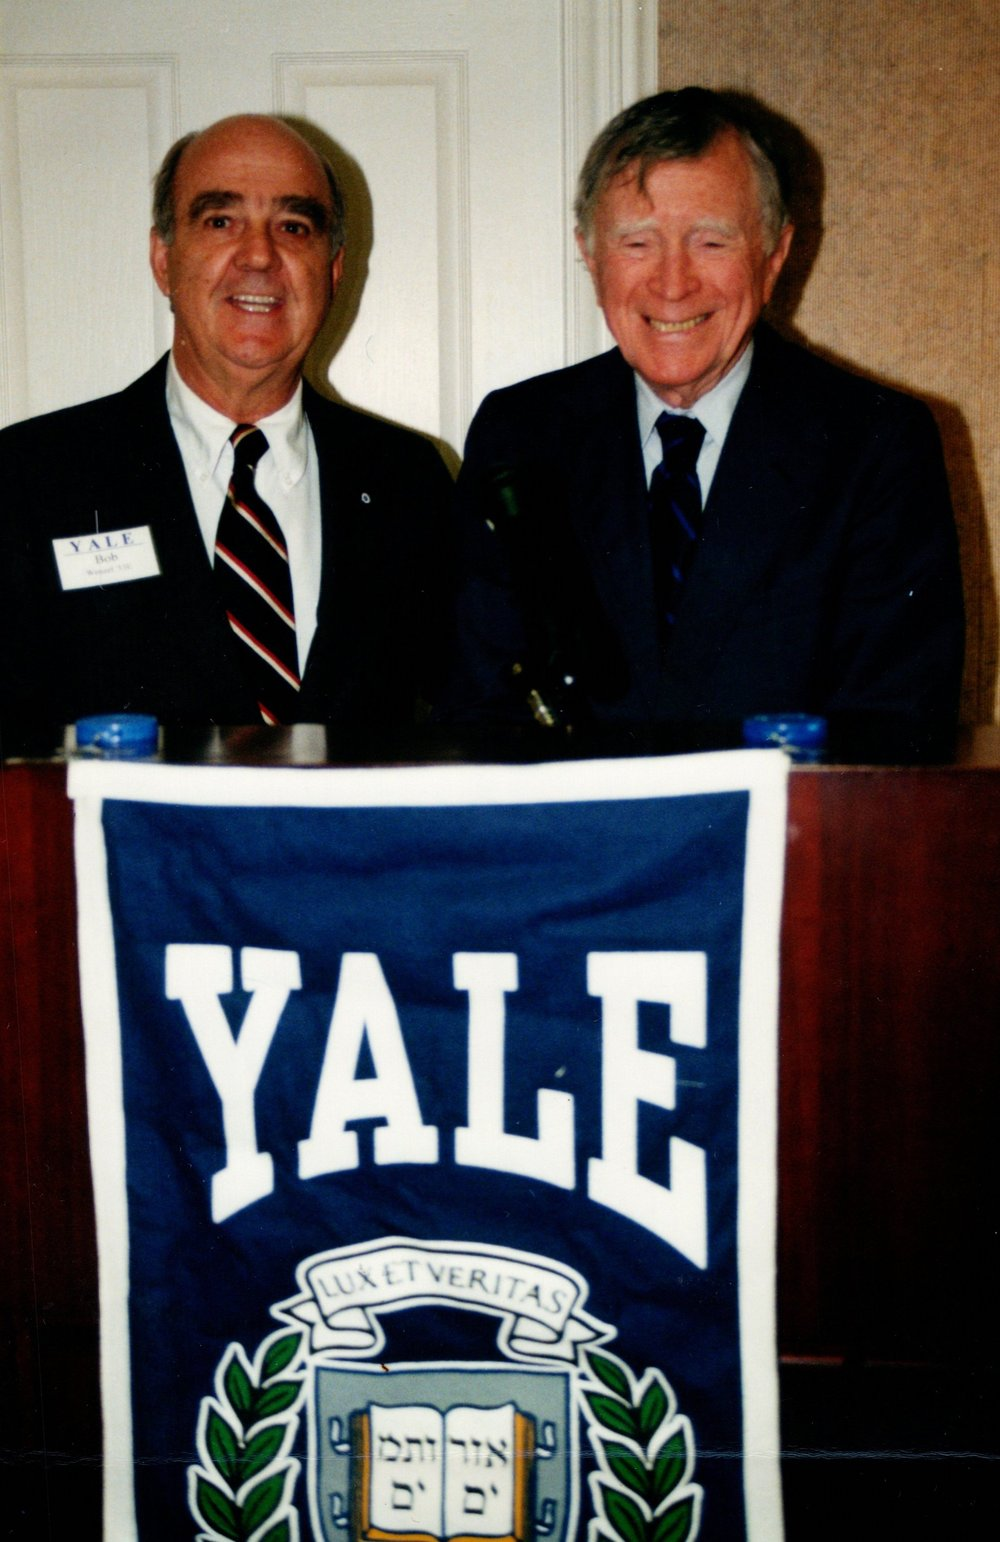 BOB WENZEL '53E, VINCENT SCULKG, JR., '40BA, '47MA, '49PHD